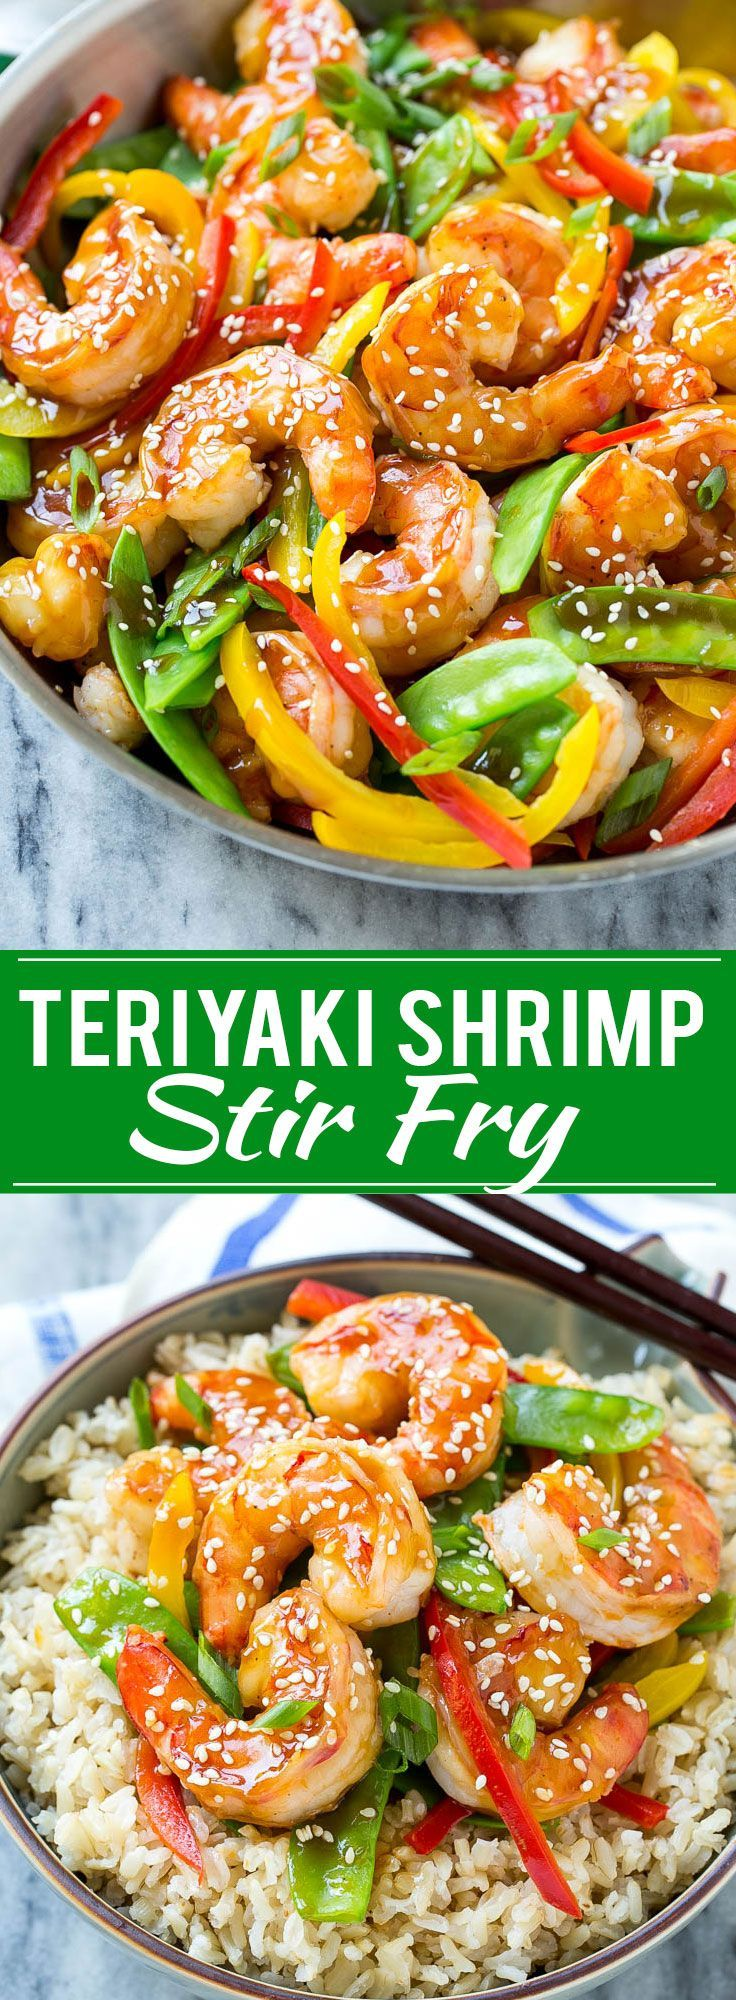 This recipe for teriyaki shrimp stir fry is shrimp and vegetables coated in a homemade teriyaki sauce and served over brown rice. An easy and healthy dinner option that's ready in less than 20 minutes(Asian Food Recipes)